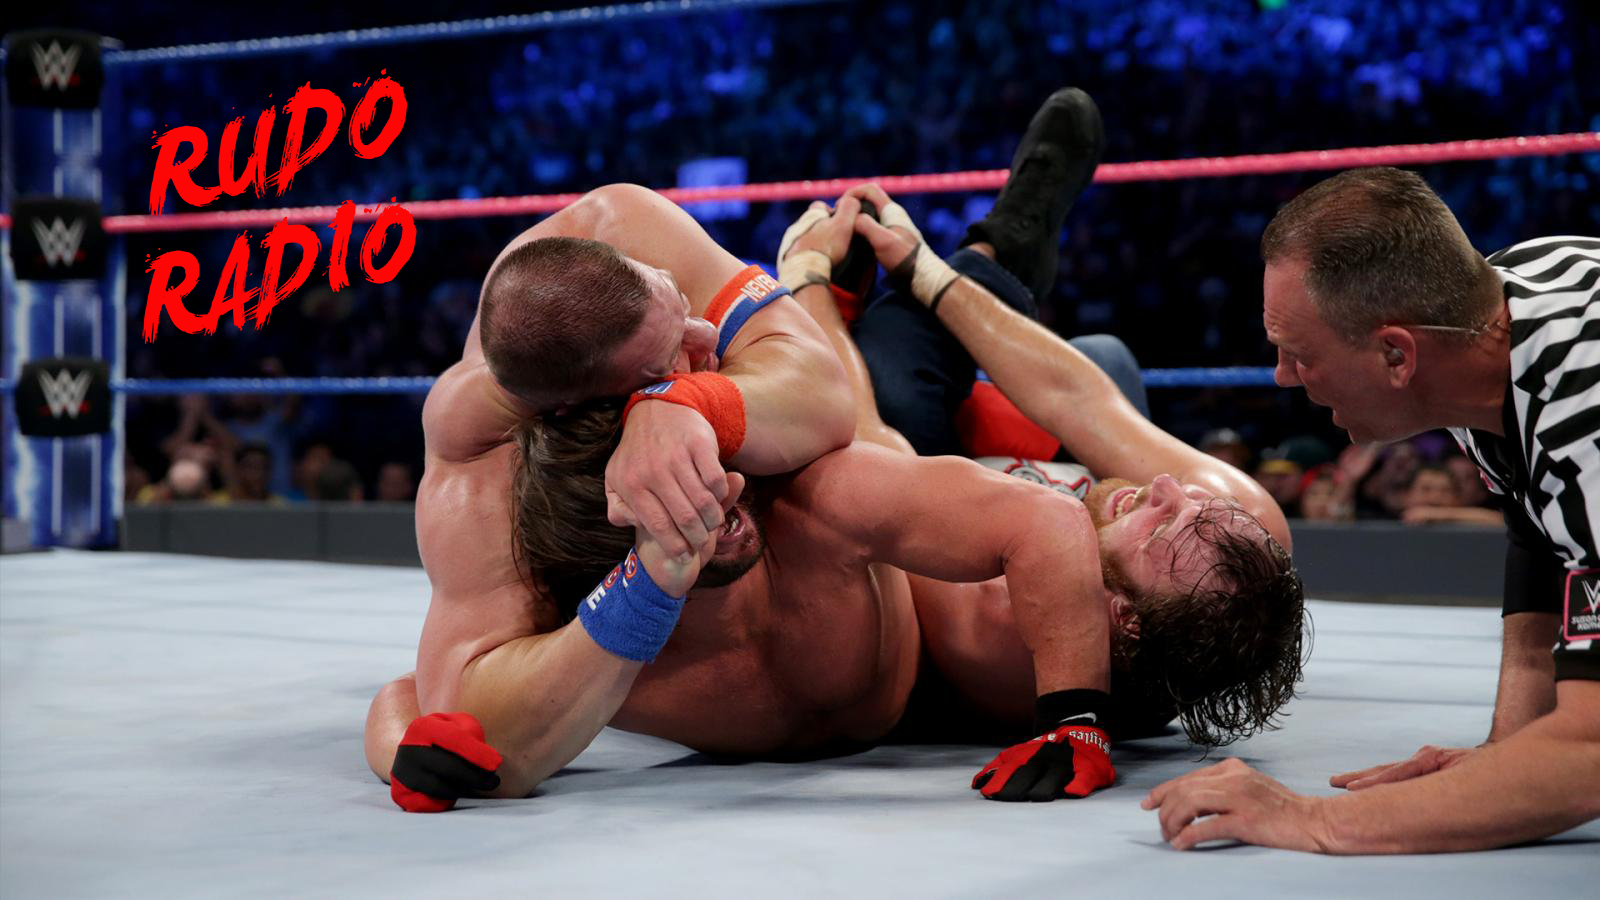 John Cena and Dean Ambrose both attempt to submit AJ Styles at the same time.